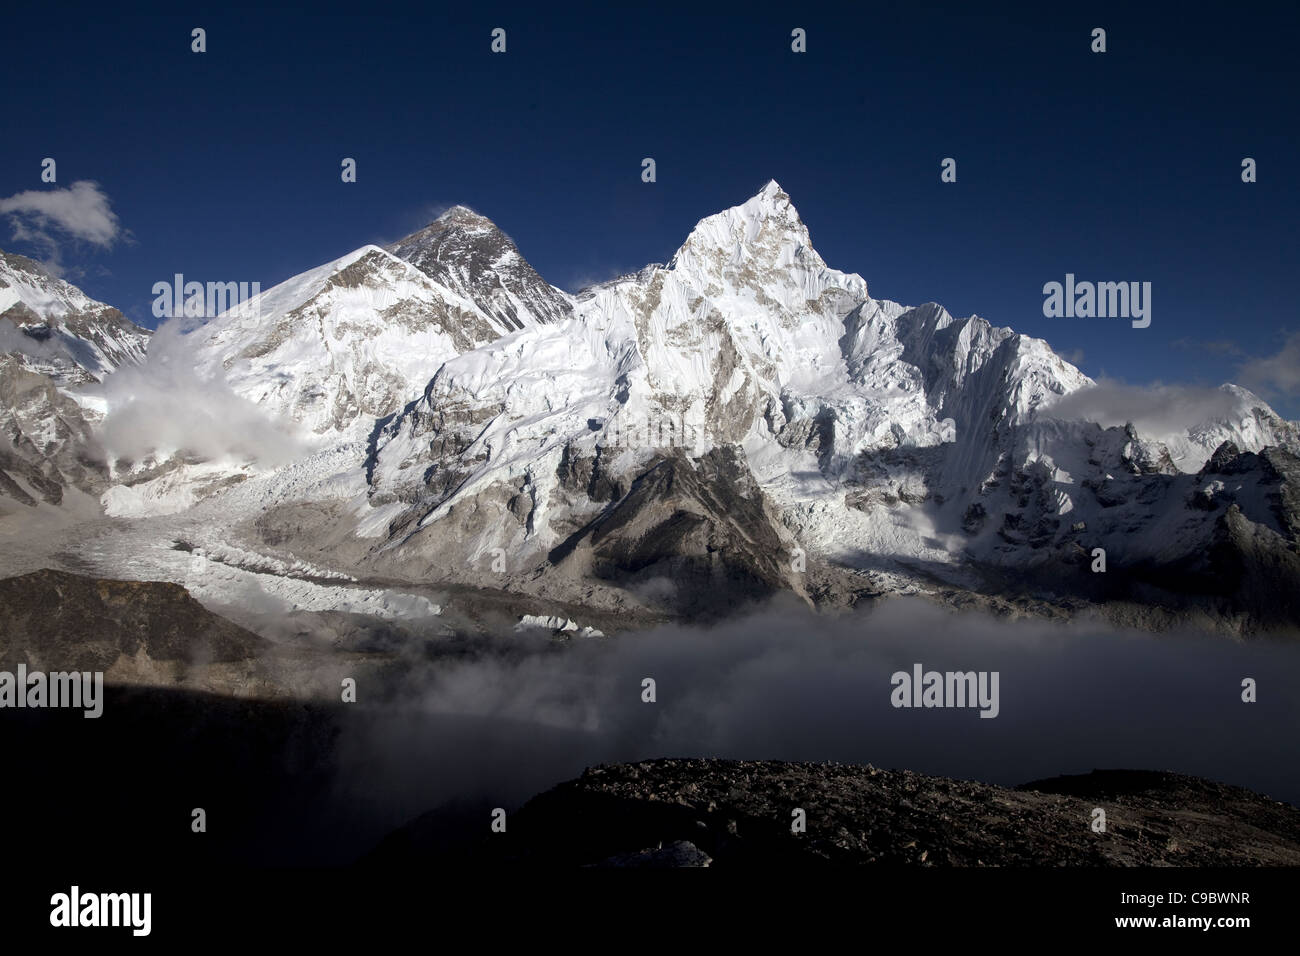 Ice and snow on the mountains of the Everest Range view  from Kala Patar - Everest is the darker peak to the left - Stock Image